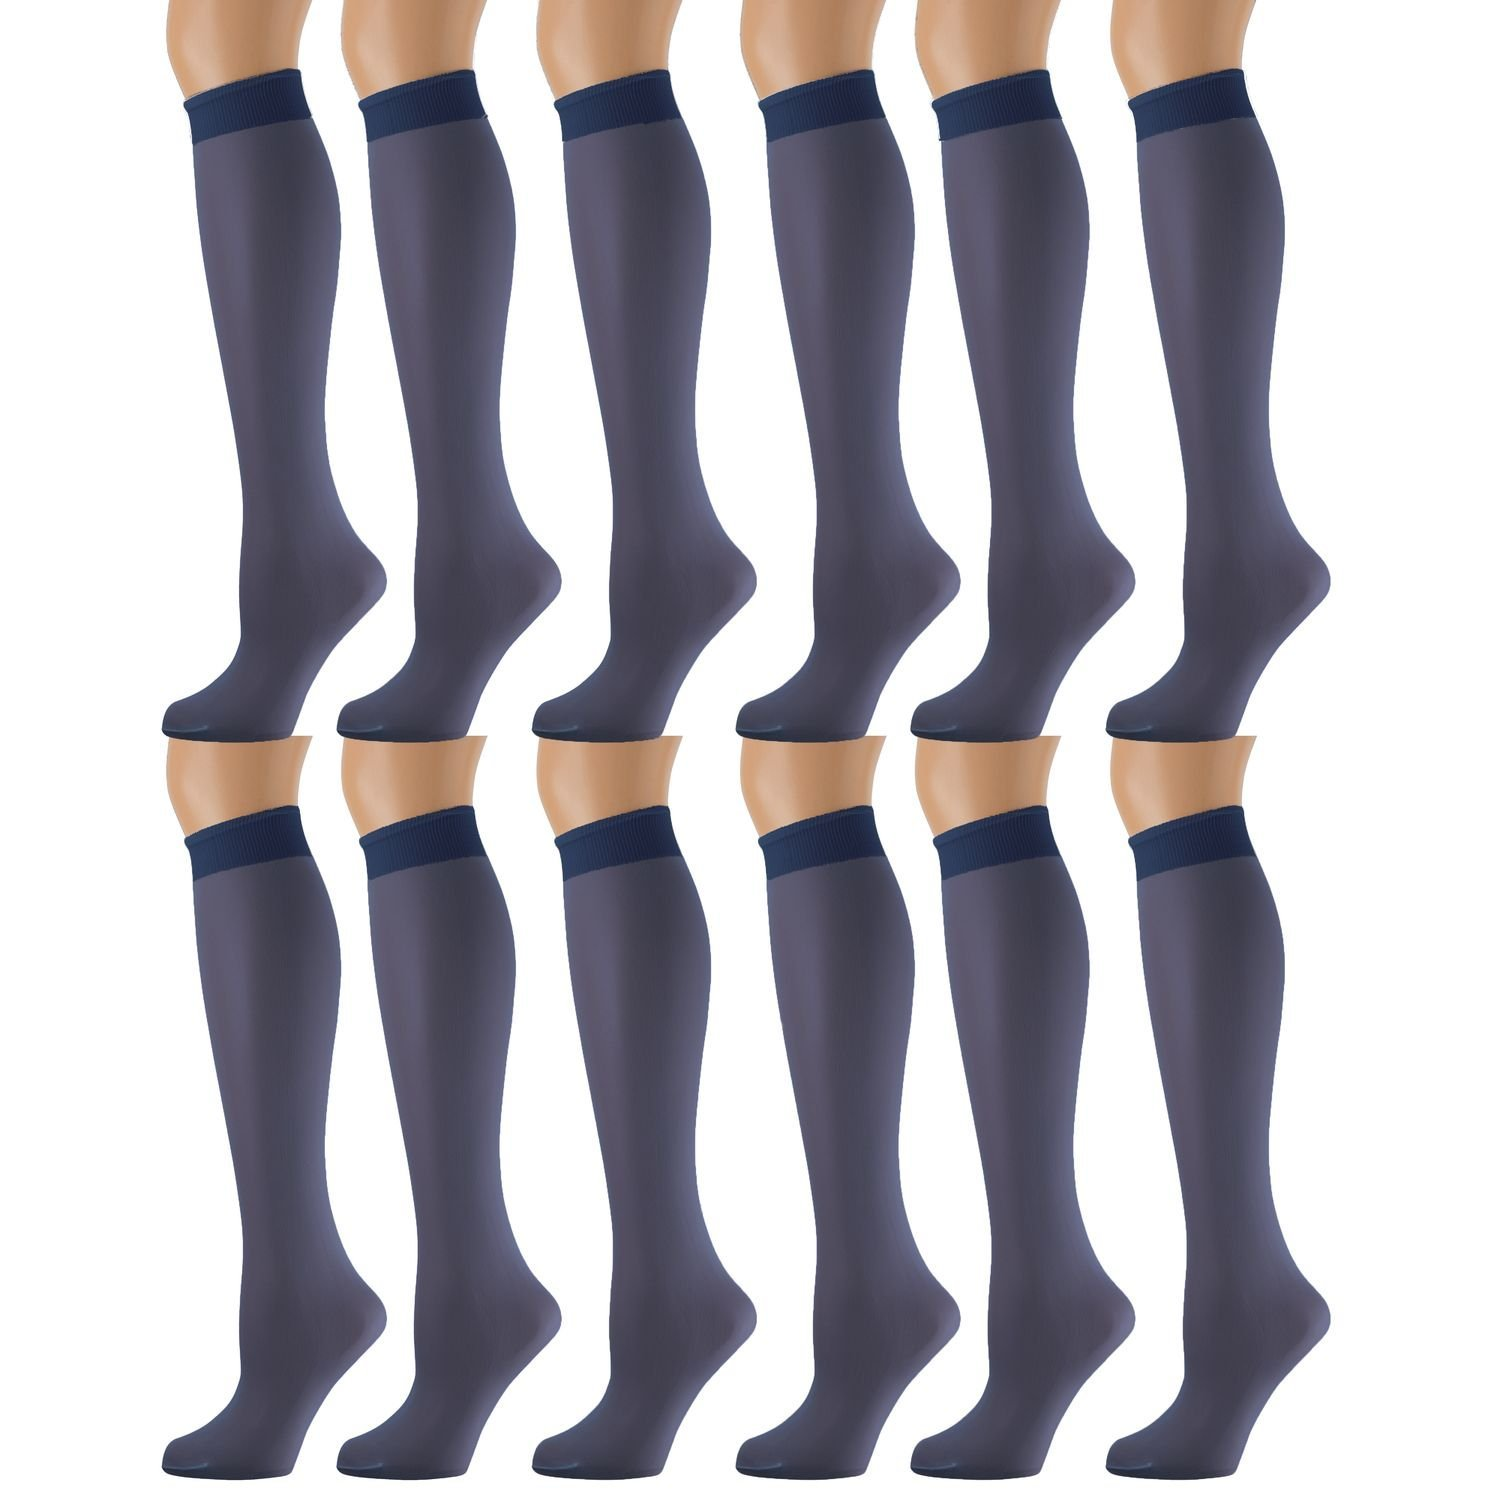 f00e025bad8 Get Quotations · 12 Pairs of excell Sheer Trouser Socks for Women